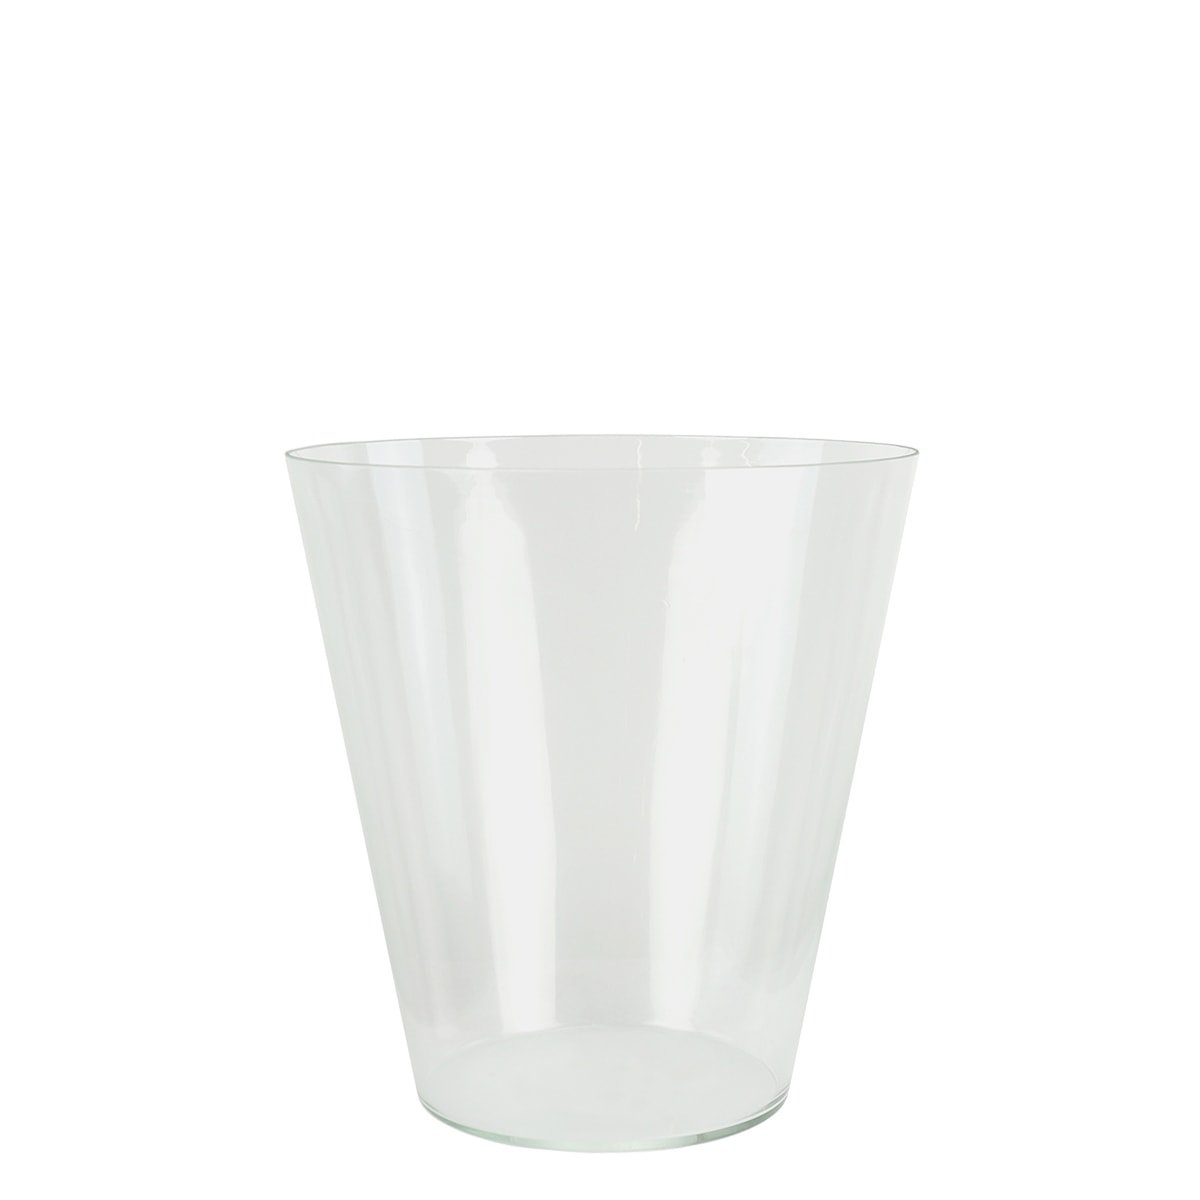 Outdoor lighting Components Glass cup lamp transparent K28 - 15.5 cm